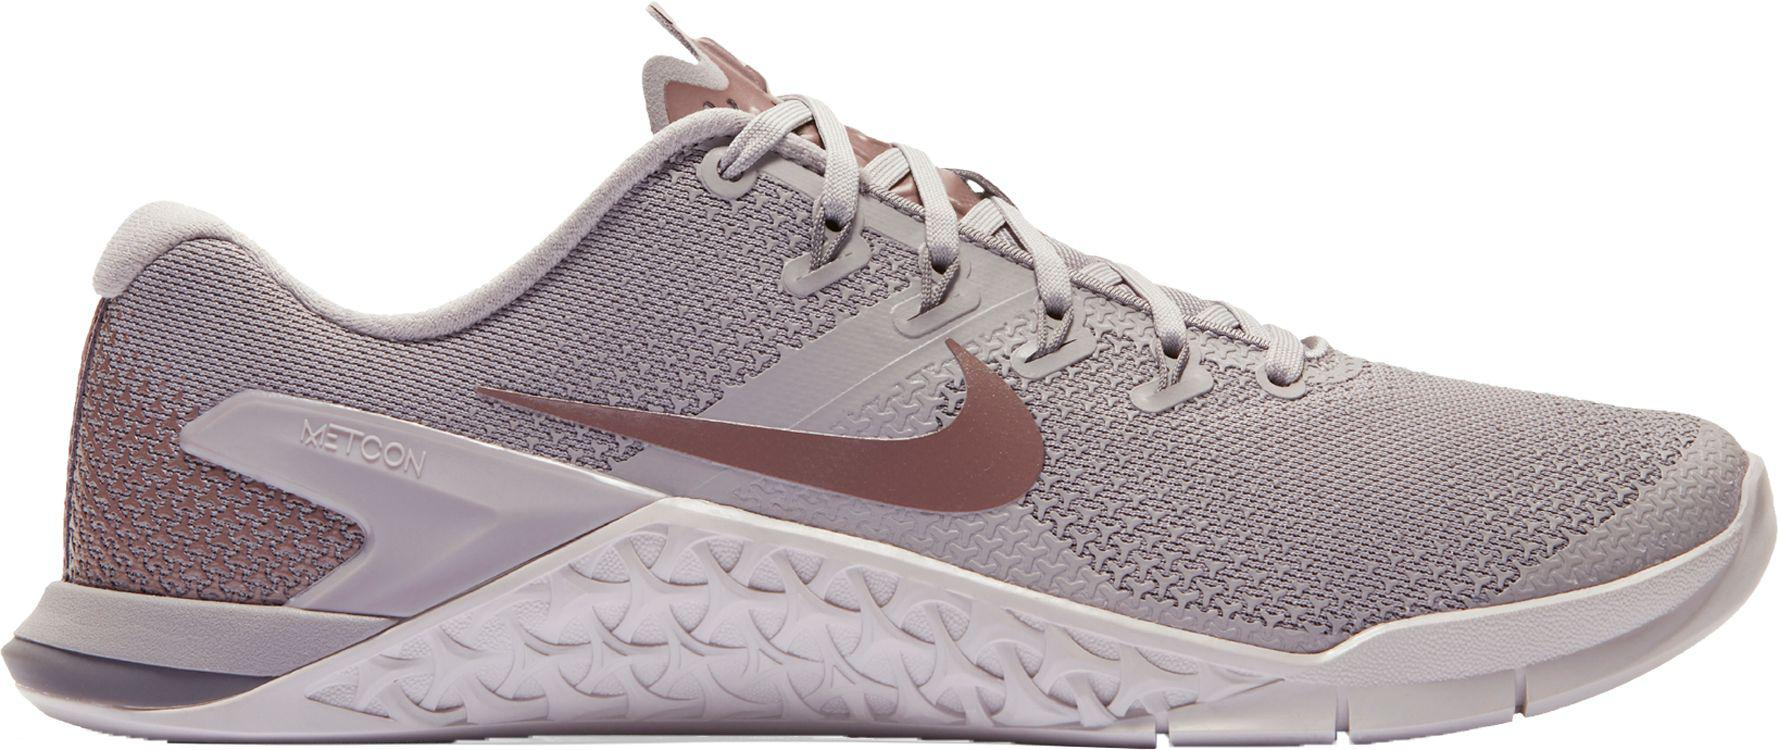 cheap for discount 7cf3d 5932d Nike - Gray Metcon 4 Lm Training Shoes - Lyst